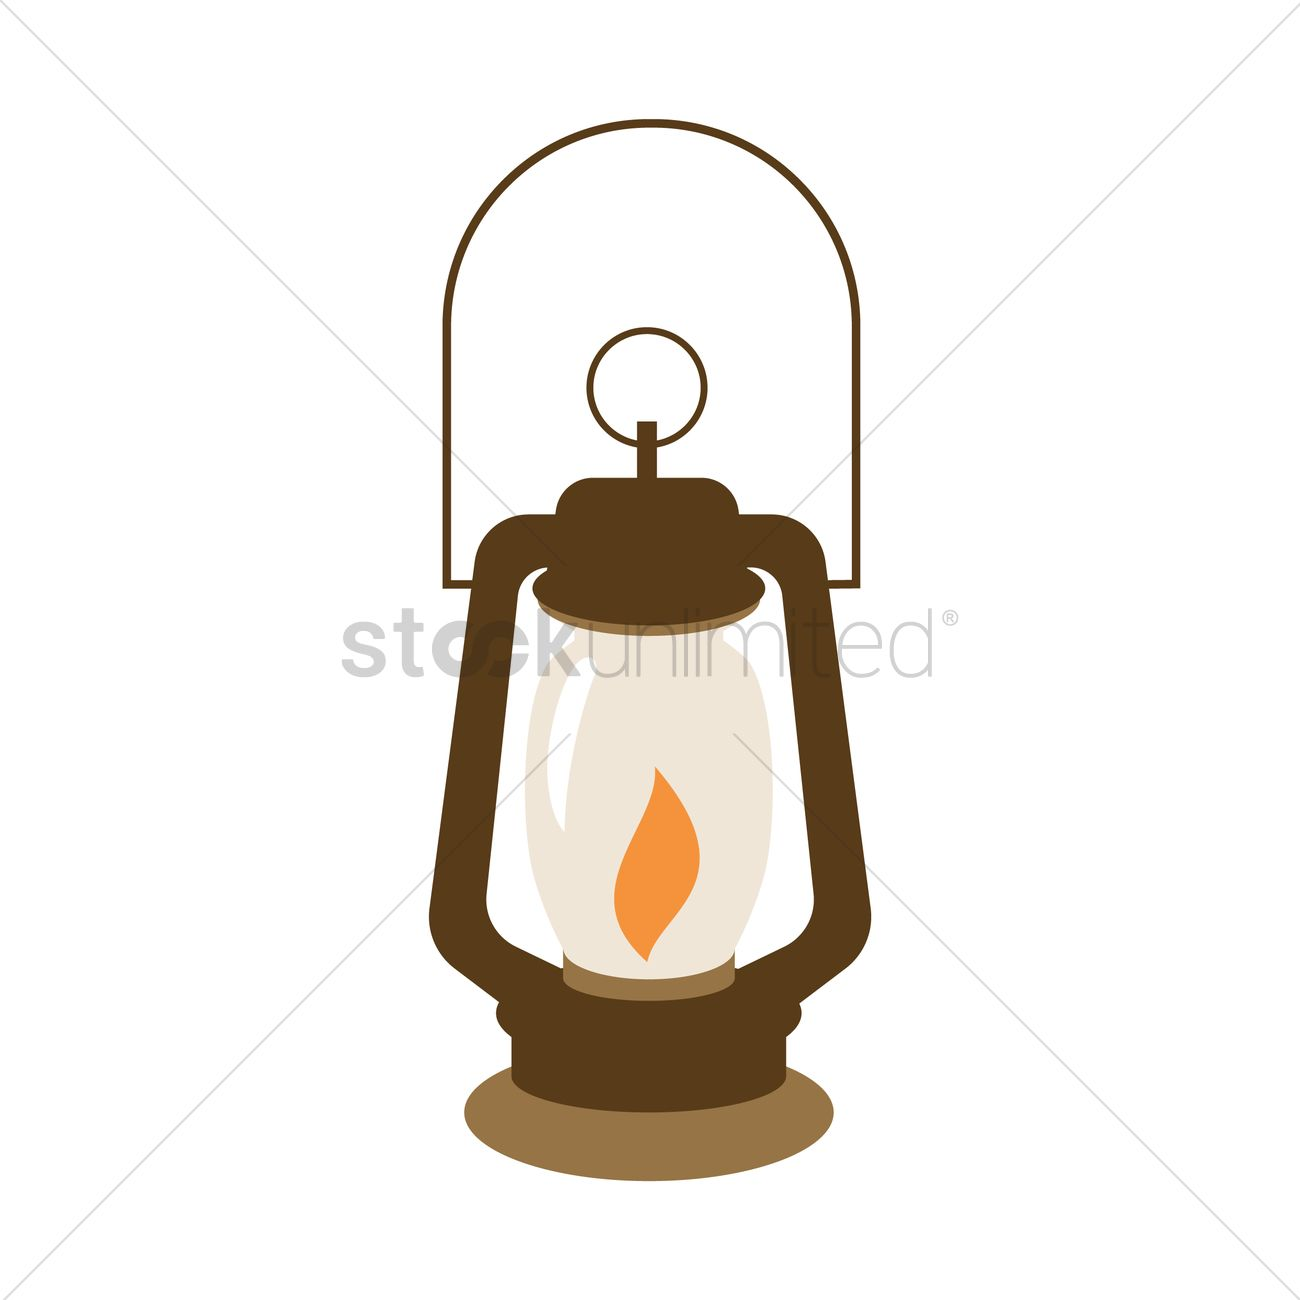 Camping lantern Vector Image - 1809062 | StockUnlimited for Oil Lamp Clip Art  67qdu